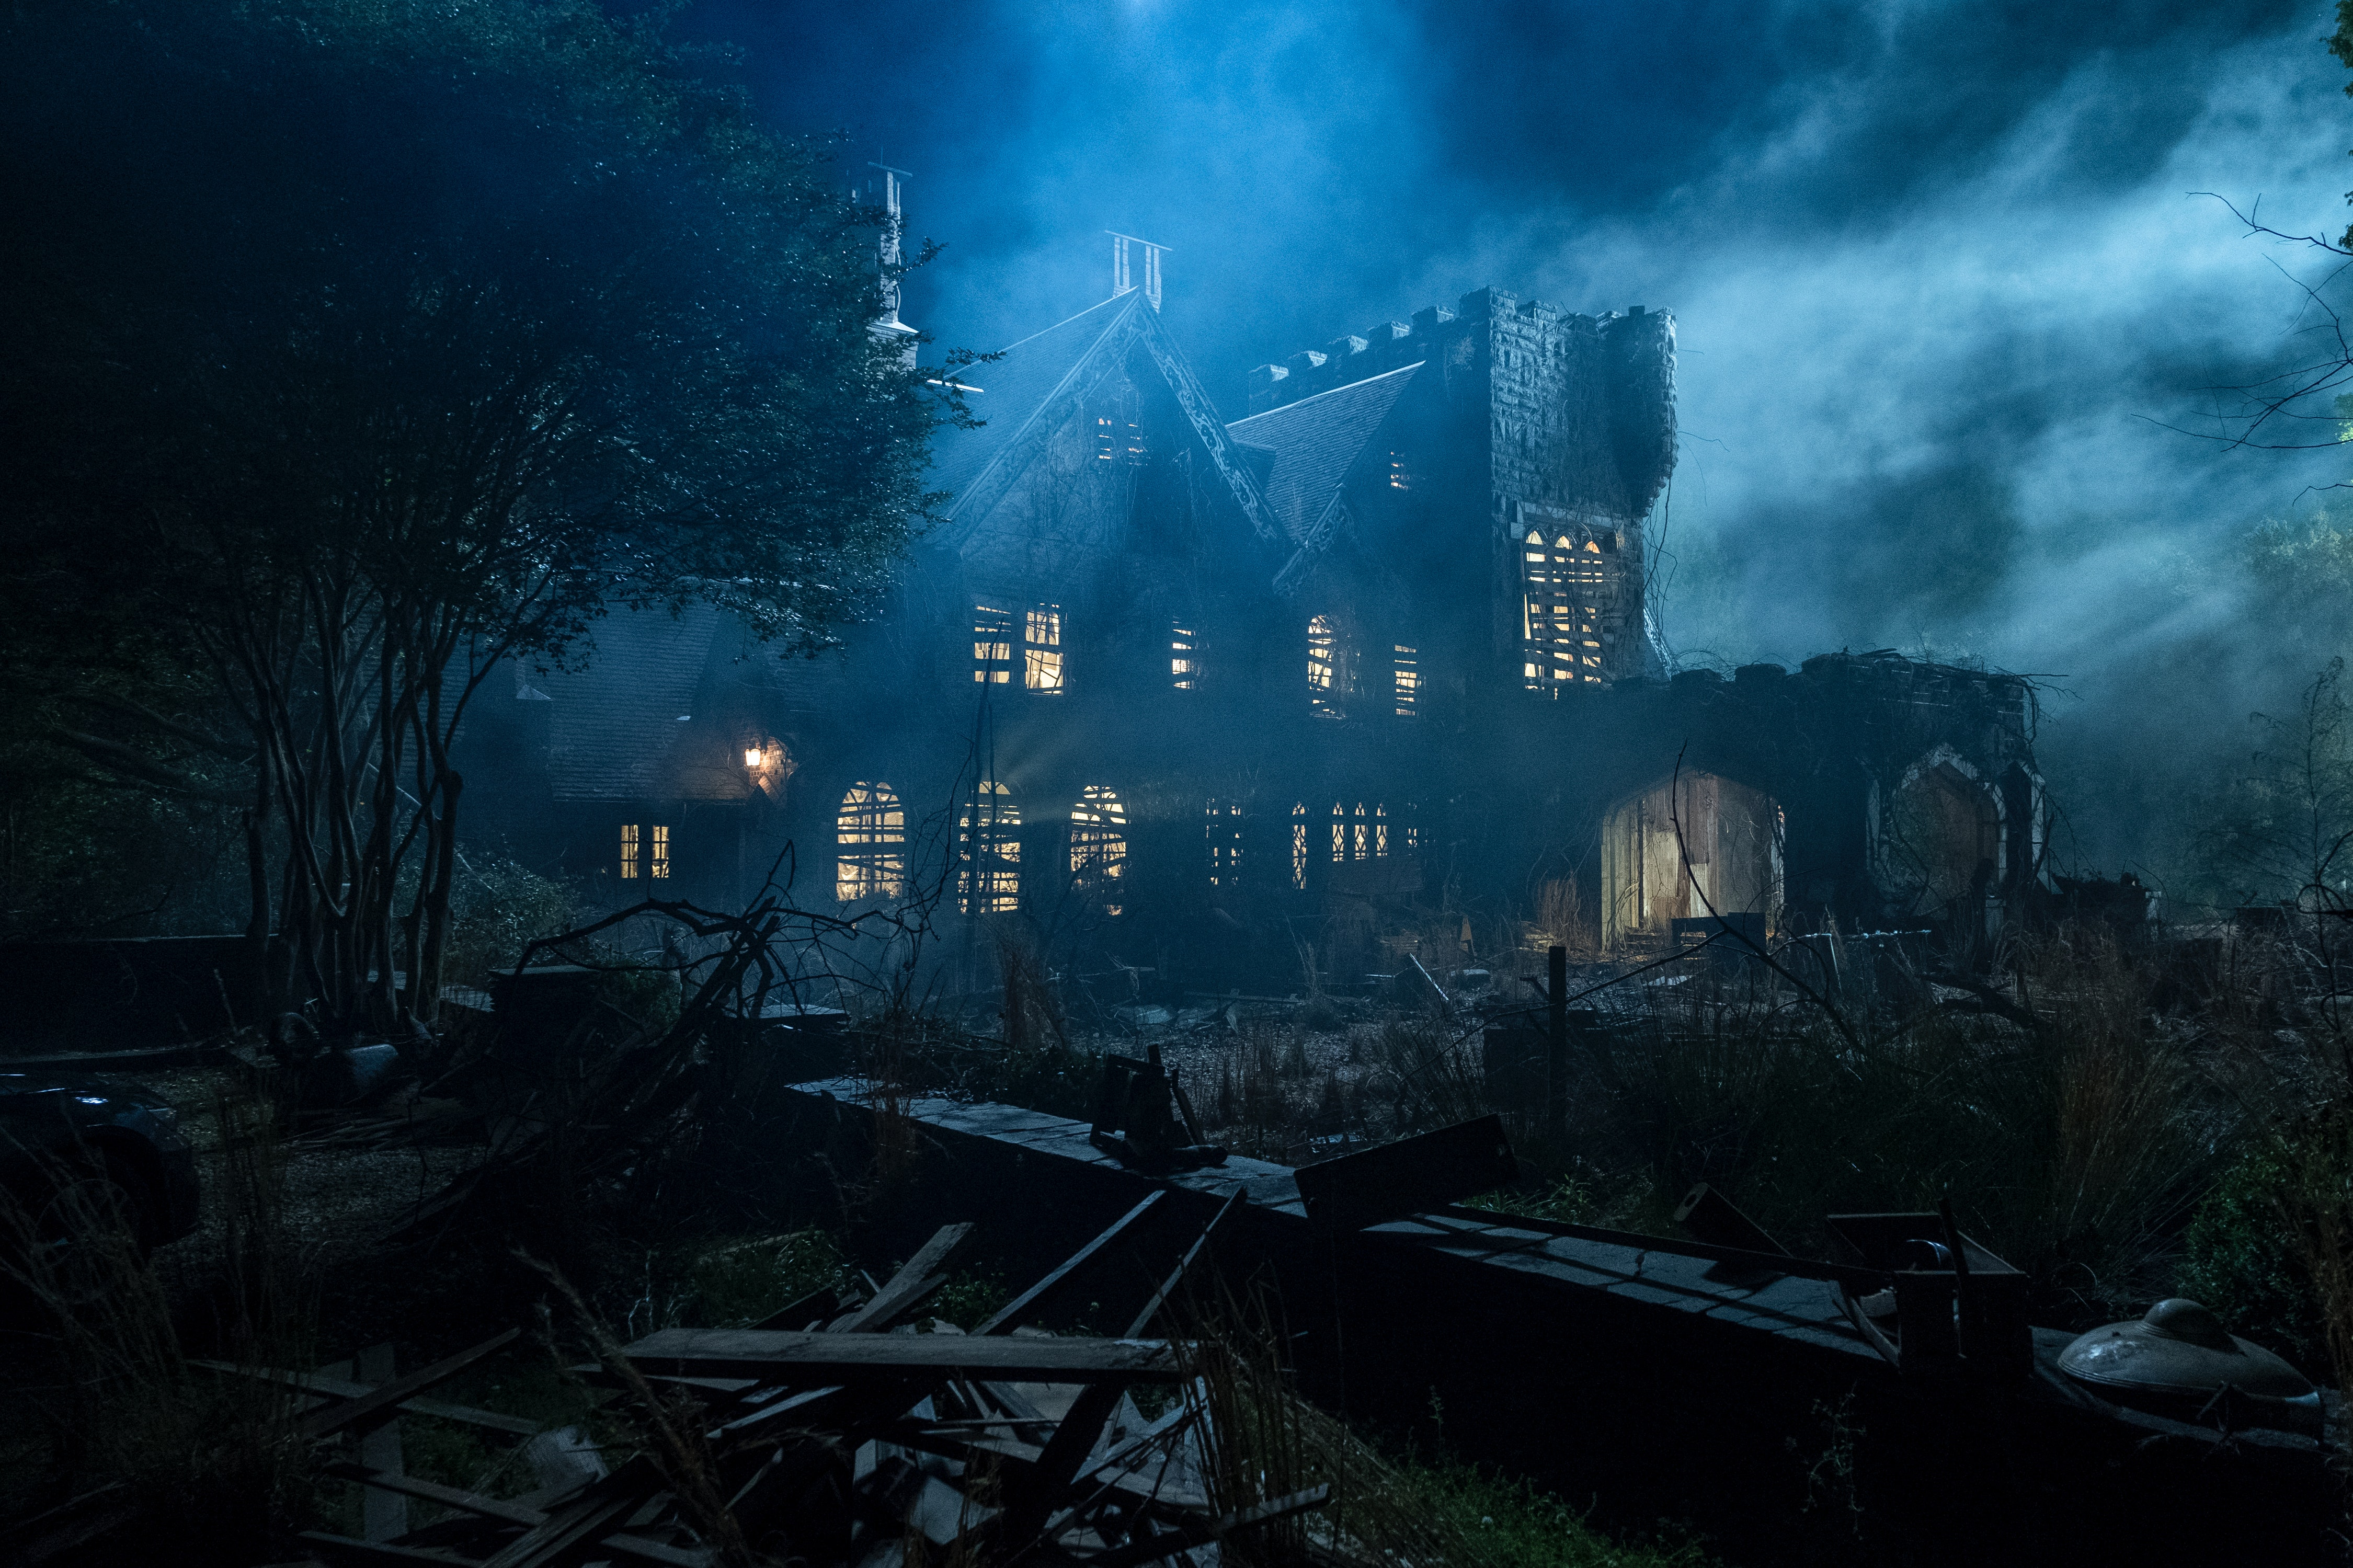 The Haunting Of Hill House By Shirley Jackson Was Reportedly Electricity In Action Inspired These 6 Spooky Places